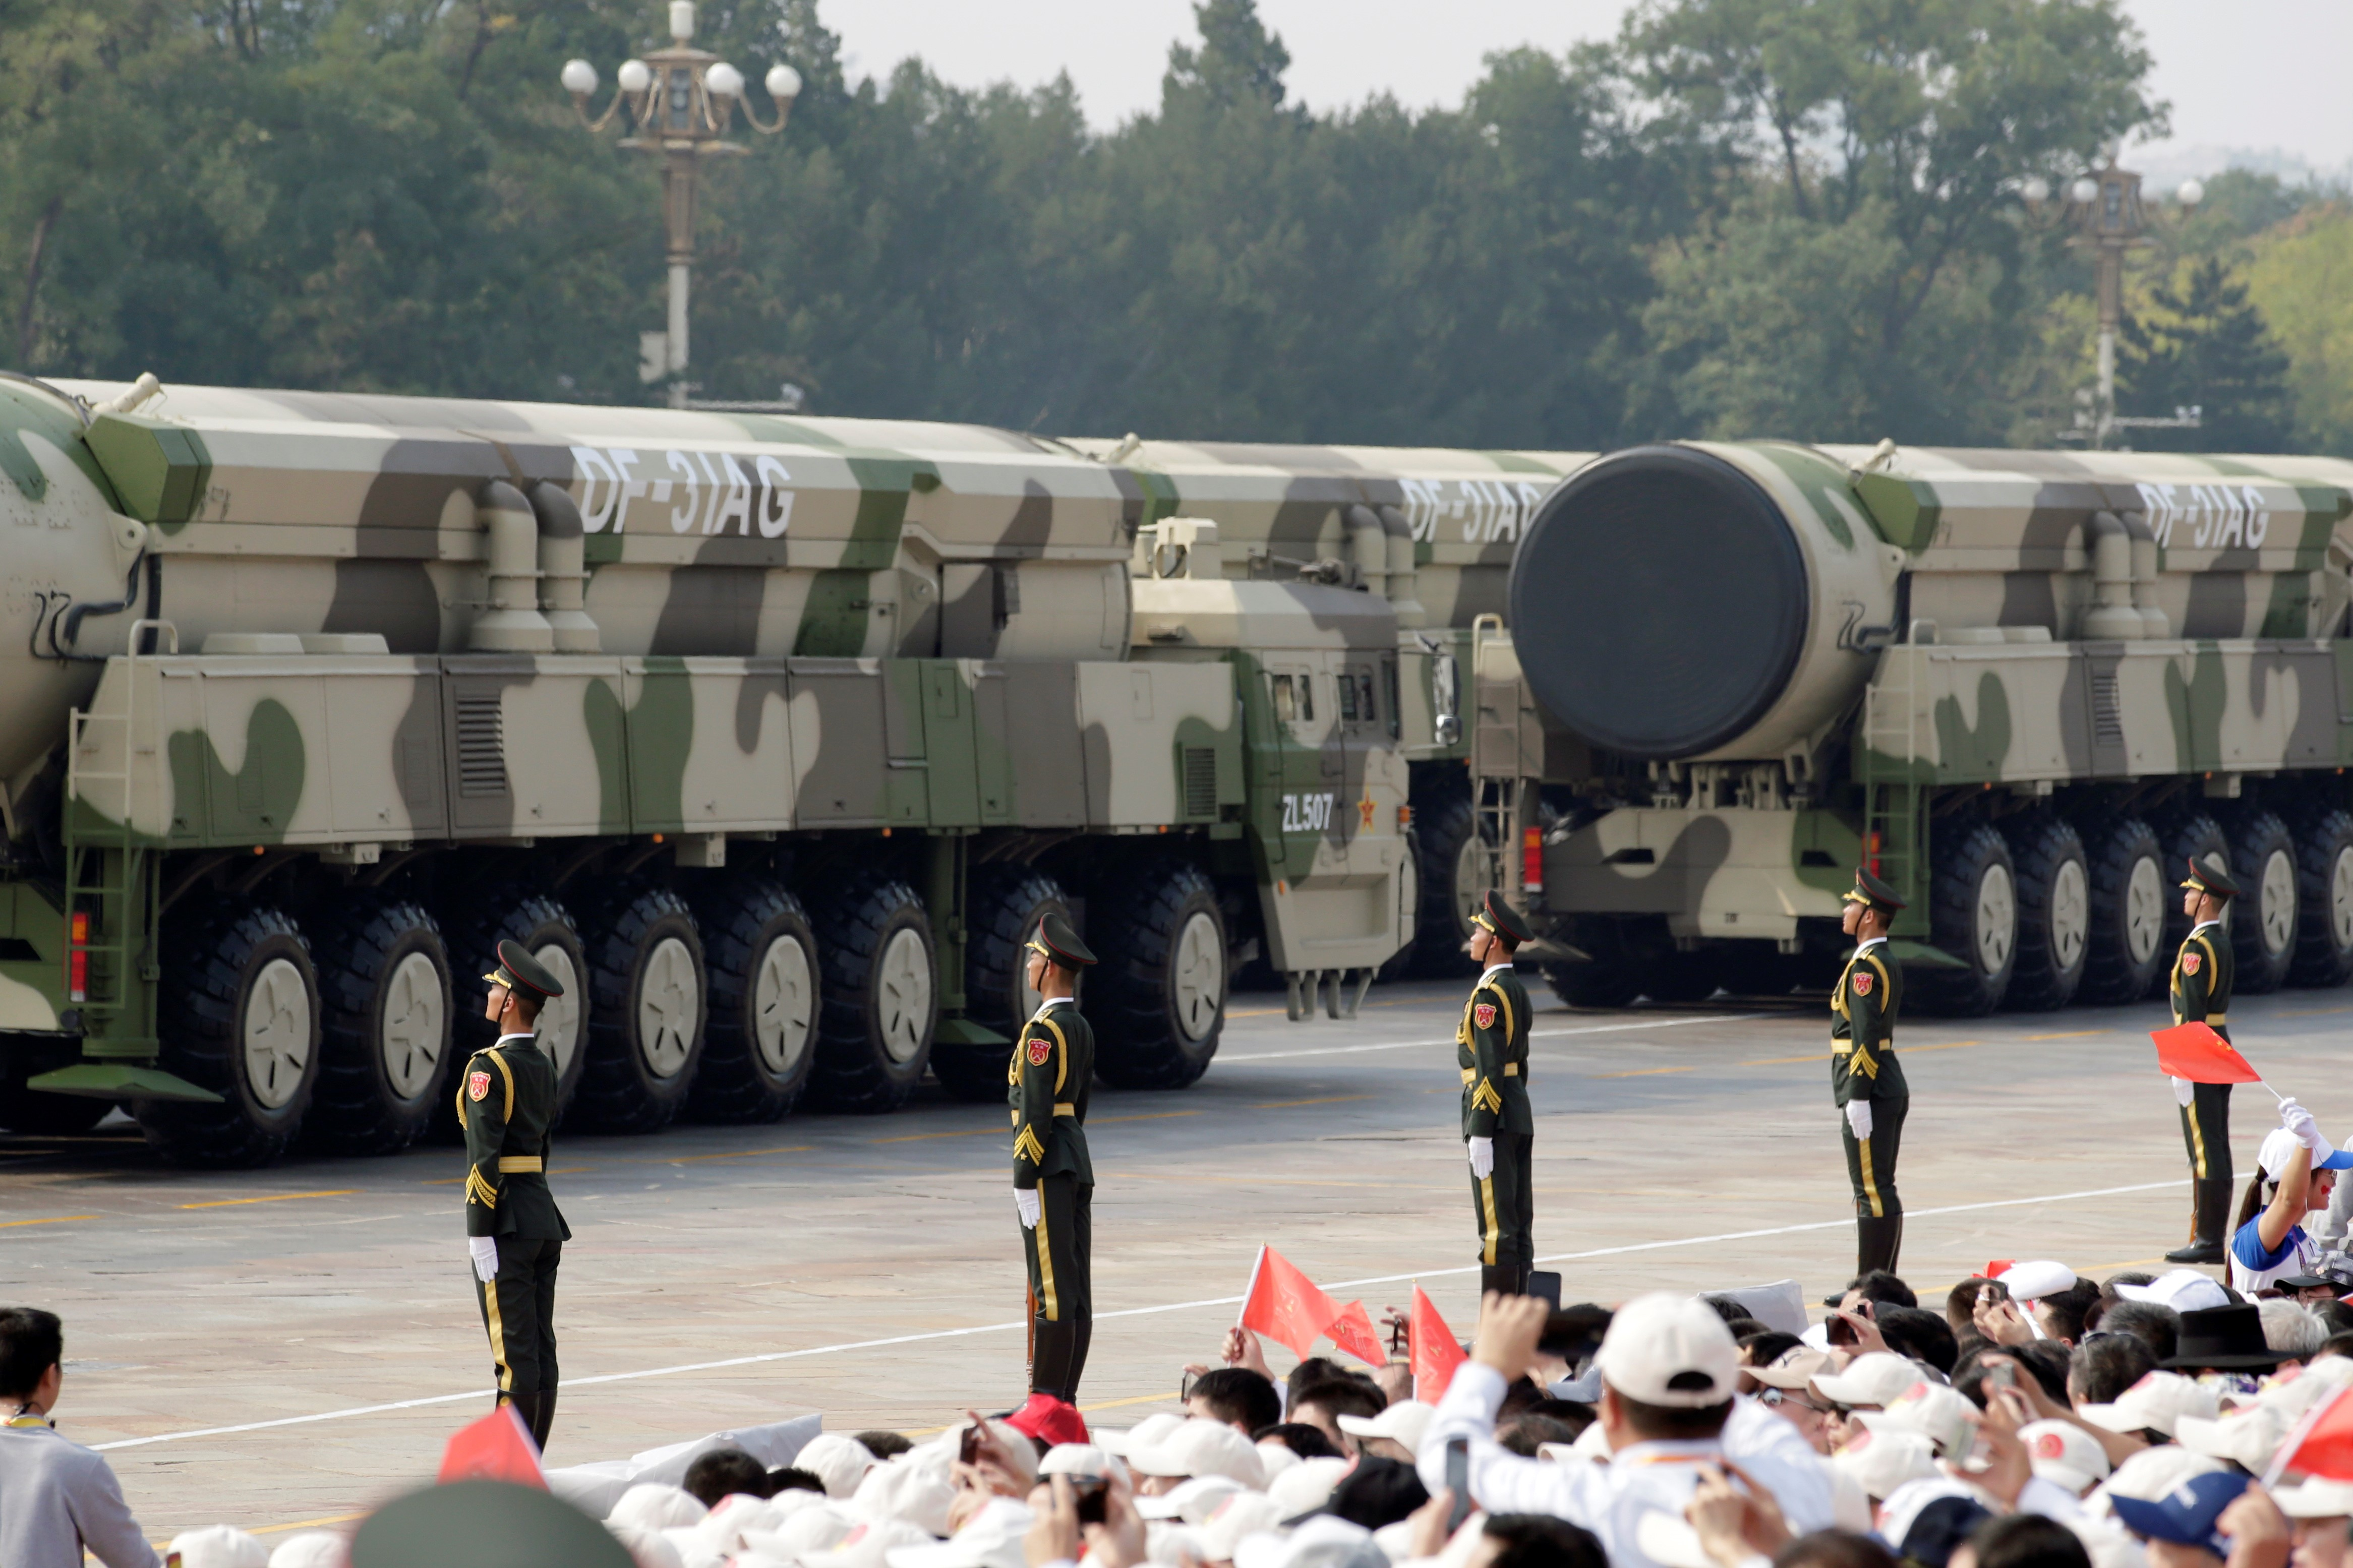 Explained: The Forgotten Reason China Is Building Lots of Missiles